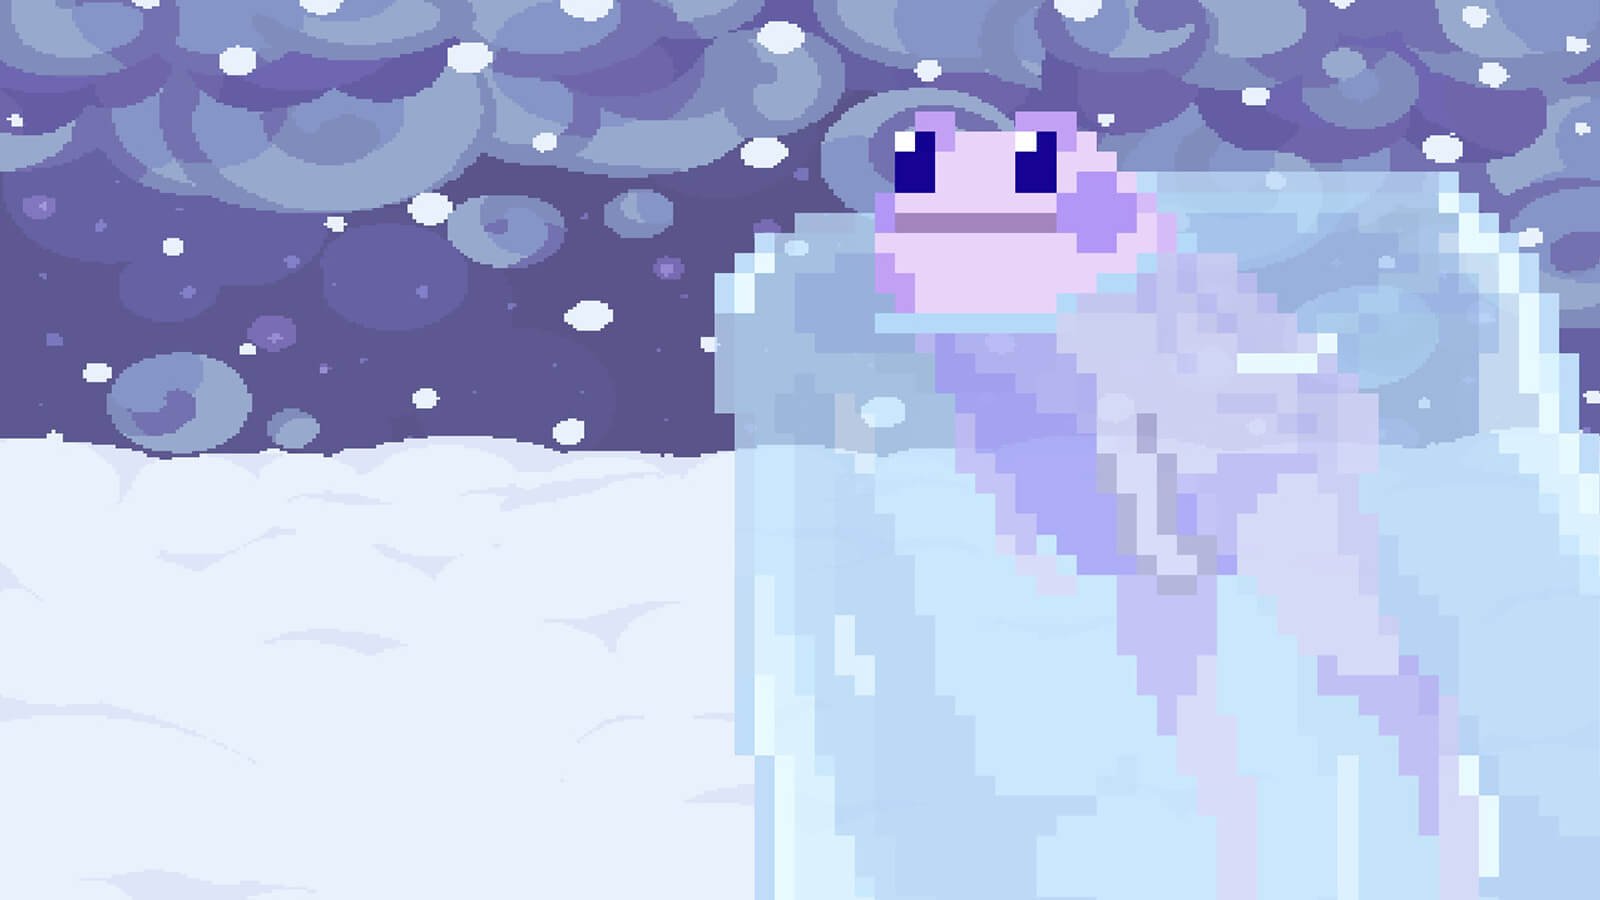 A purple frog partially frozen in ice on a snowy planet.